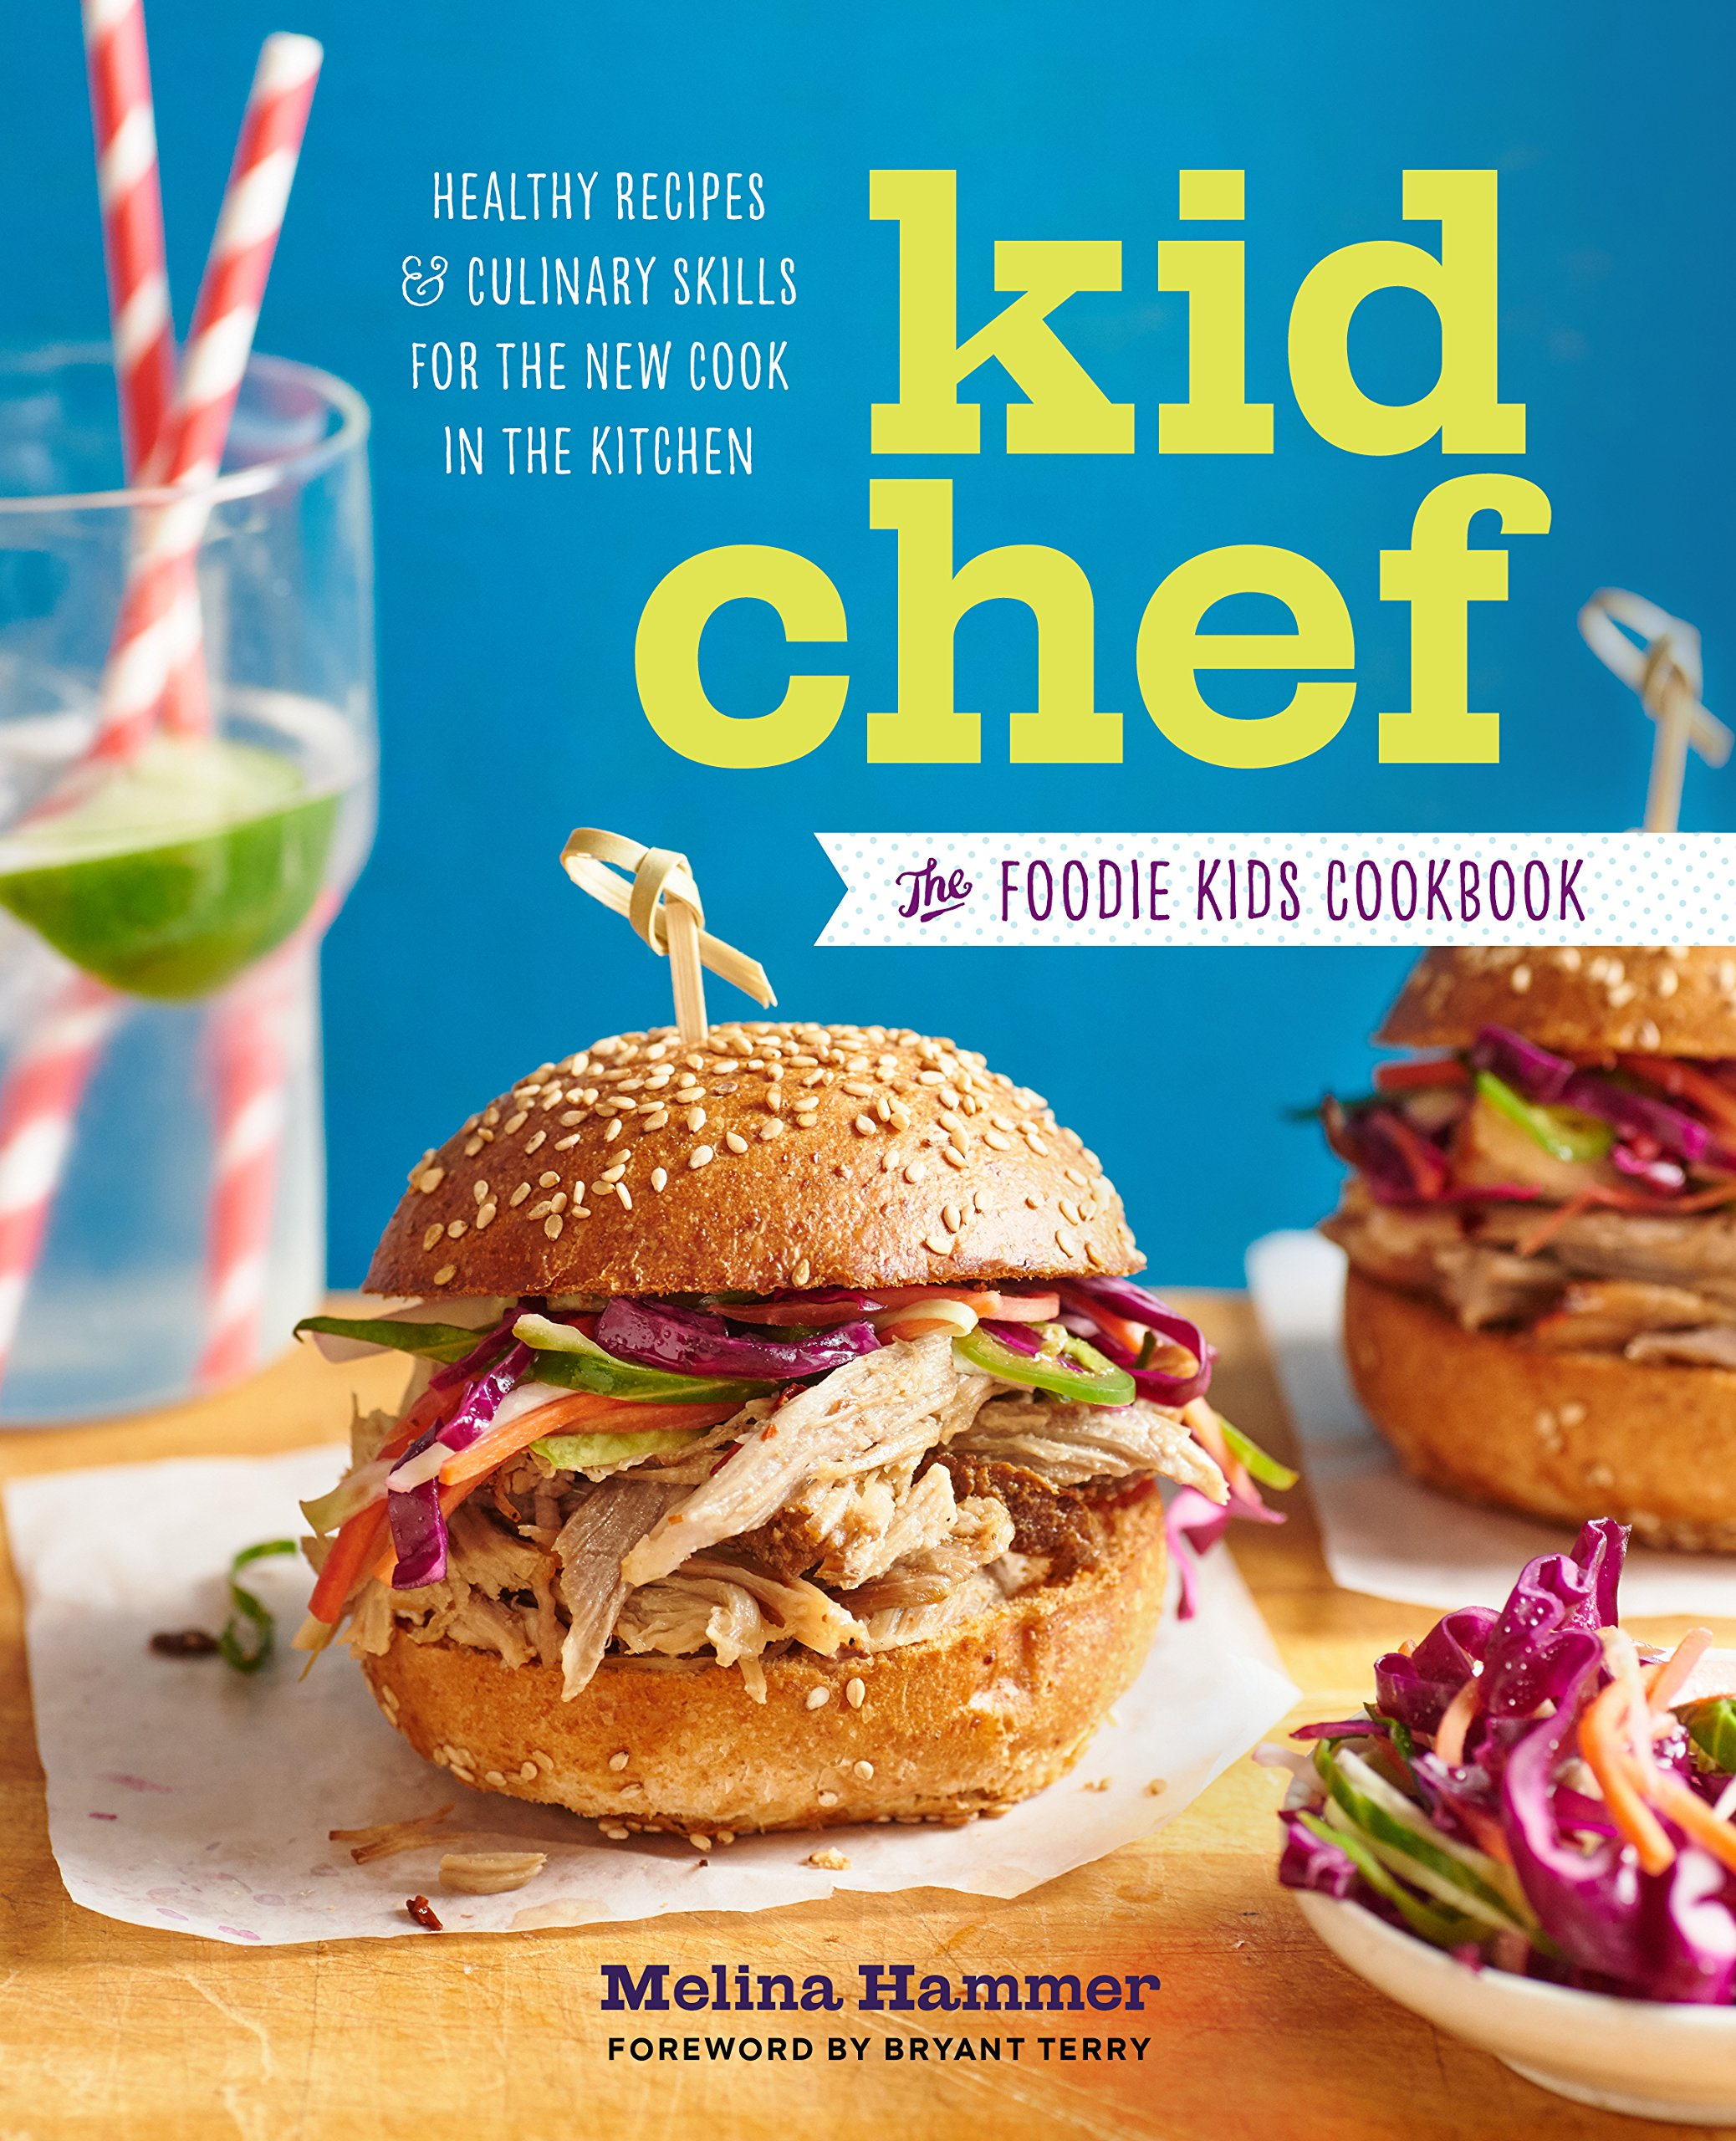 Kid Chef: The Foodie Kids Cookbook: Healthy Recipes and Culinary Skills for the New Cook in the Kitchen Paperback – April 5, 2016 Melina Hammer Bryant Terry Sonoma Press 1943451206